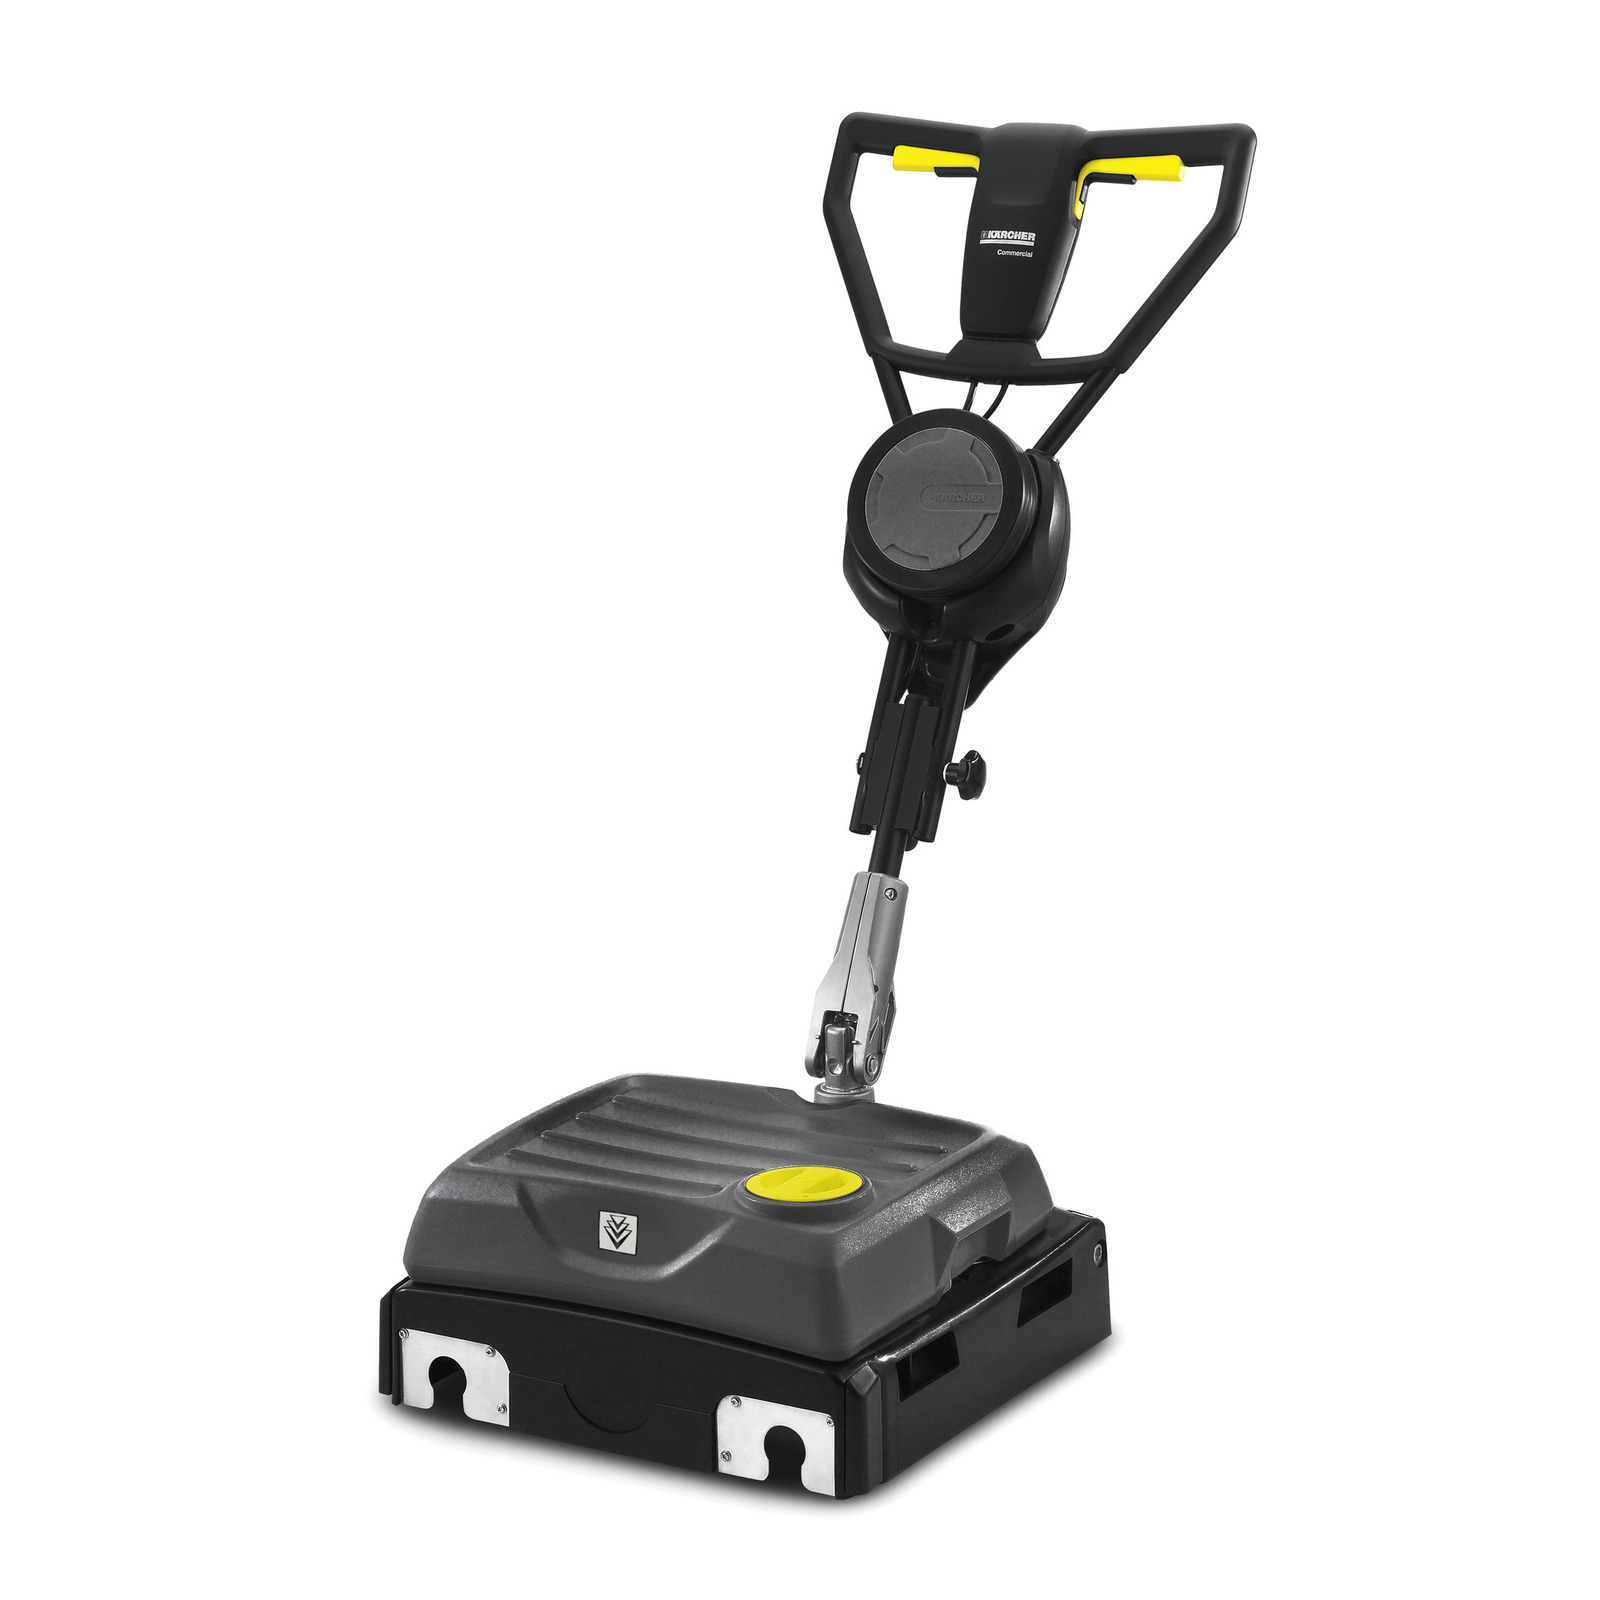 Karcher BRS 40/1000 C 1.783-332.0 Windsor Pivot CRB 9.840-806.0 Saber Blade Cylindrical Floor Scrubbing Machine (Brushes Not Included) FREE Shipping